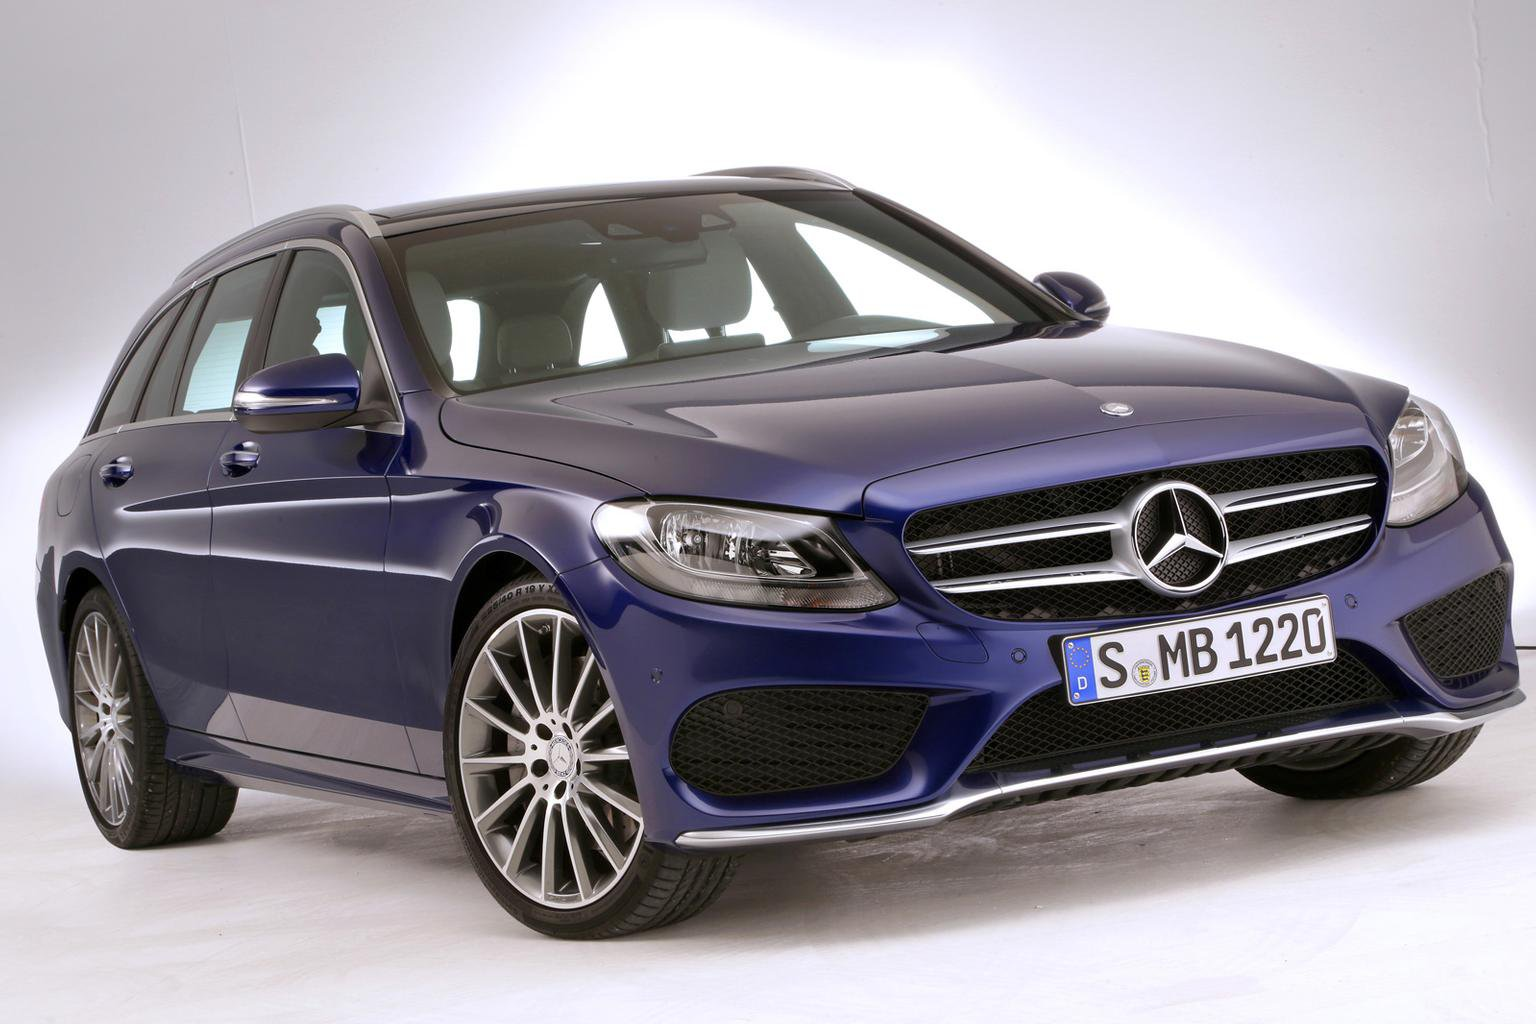 2014 Mercedes C-Class Estate revealed